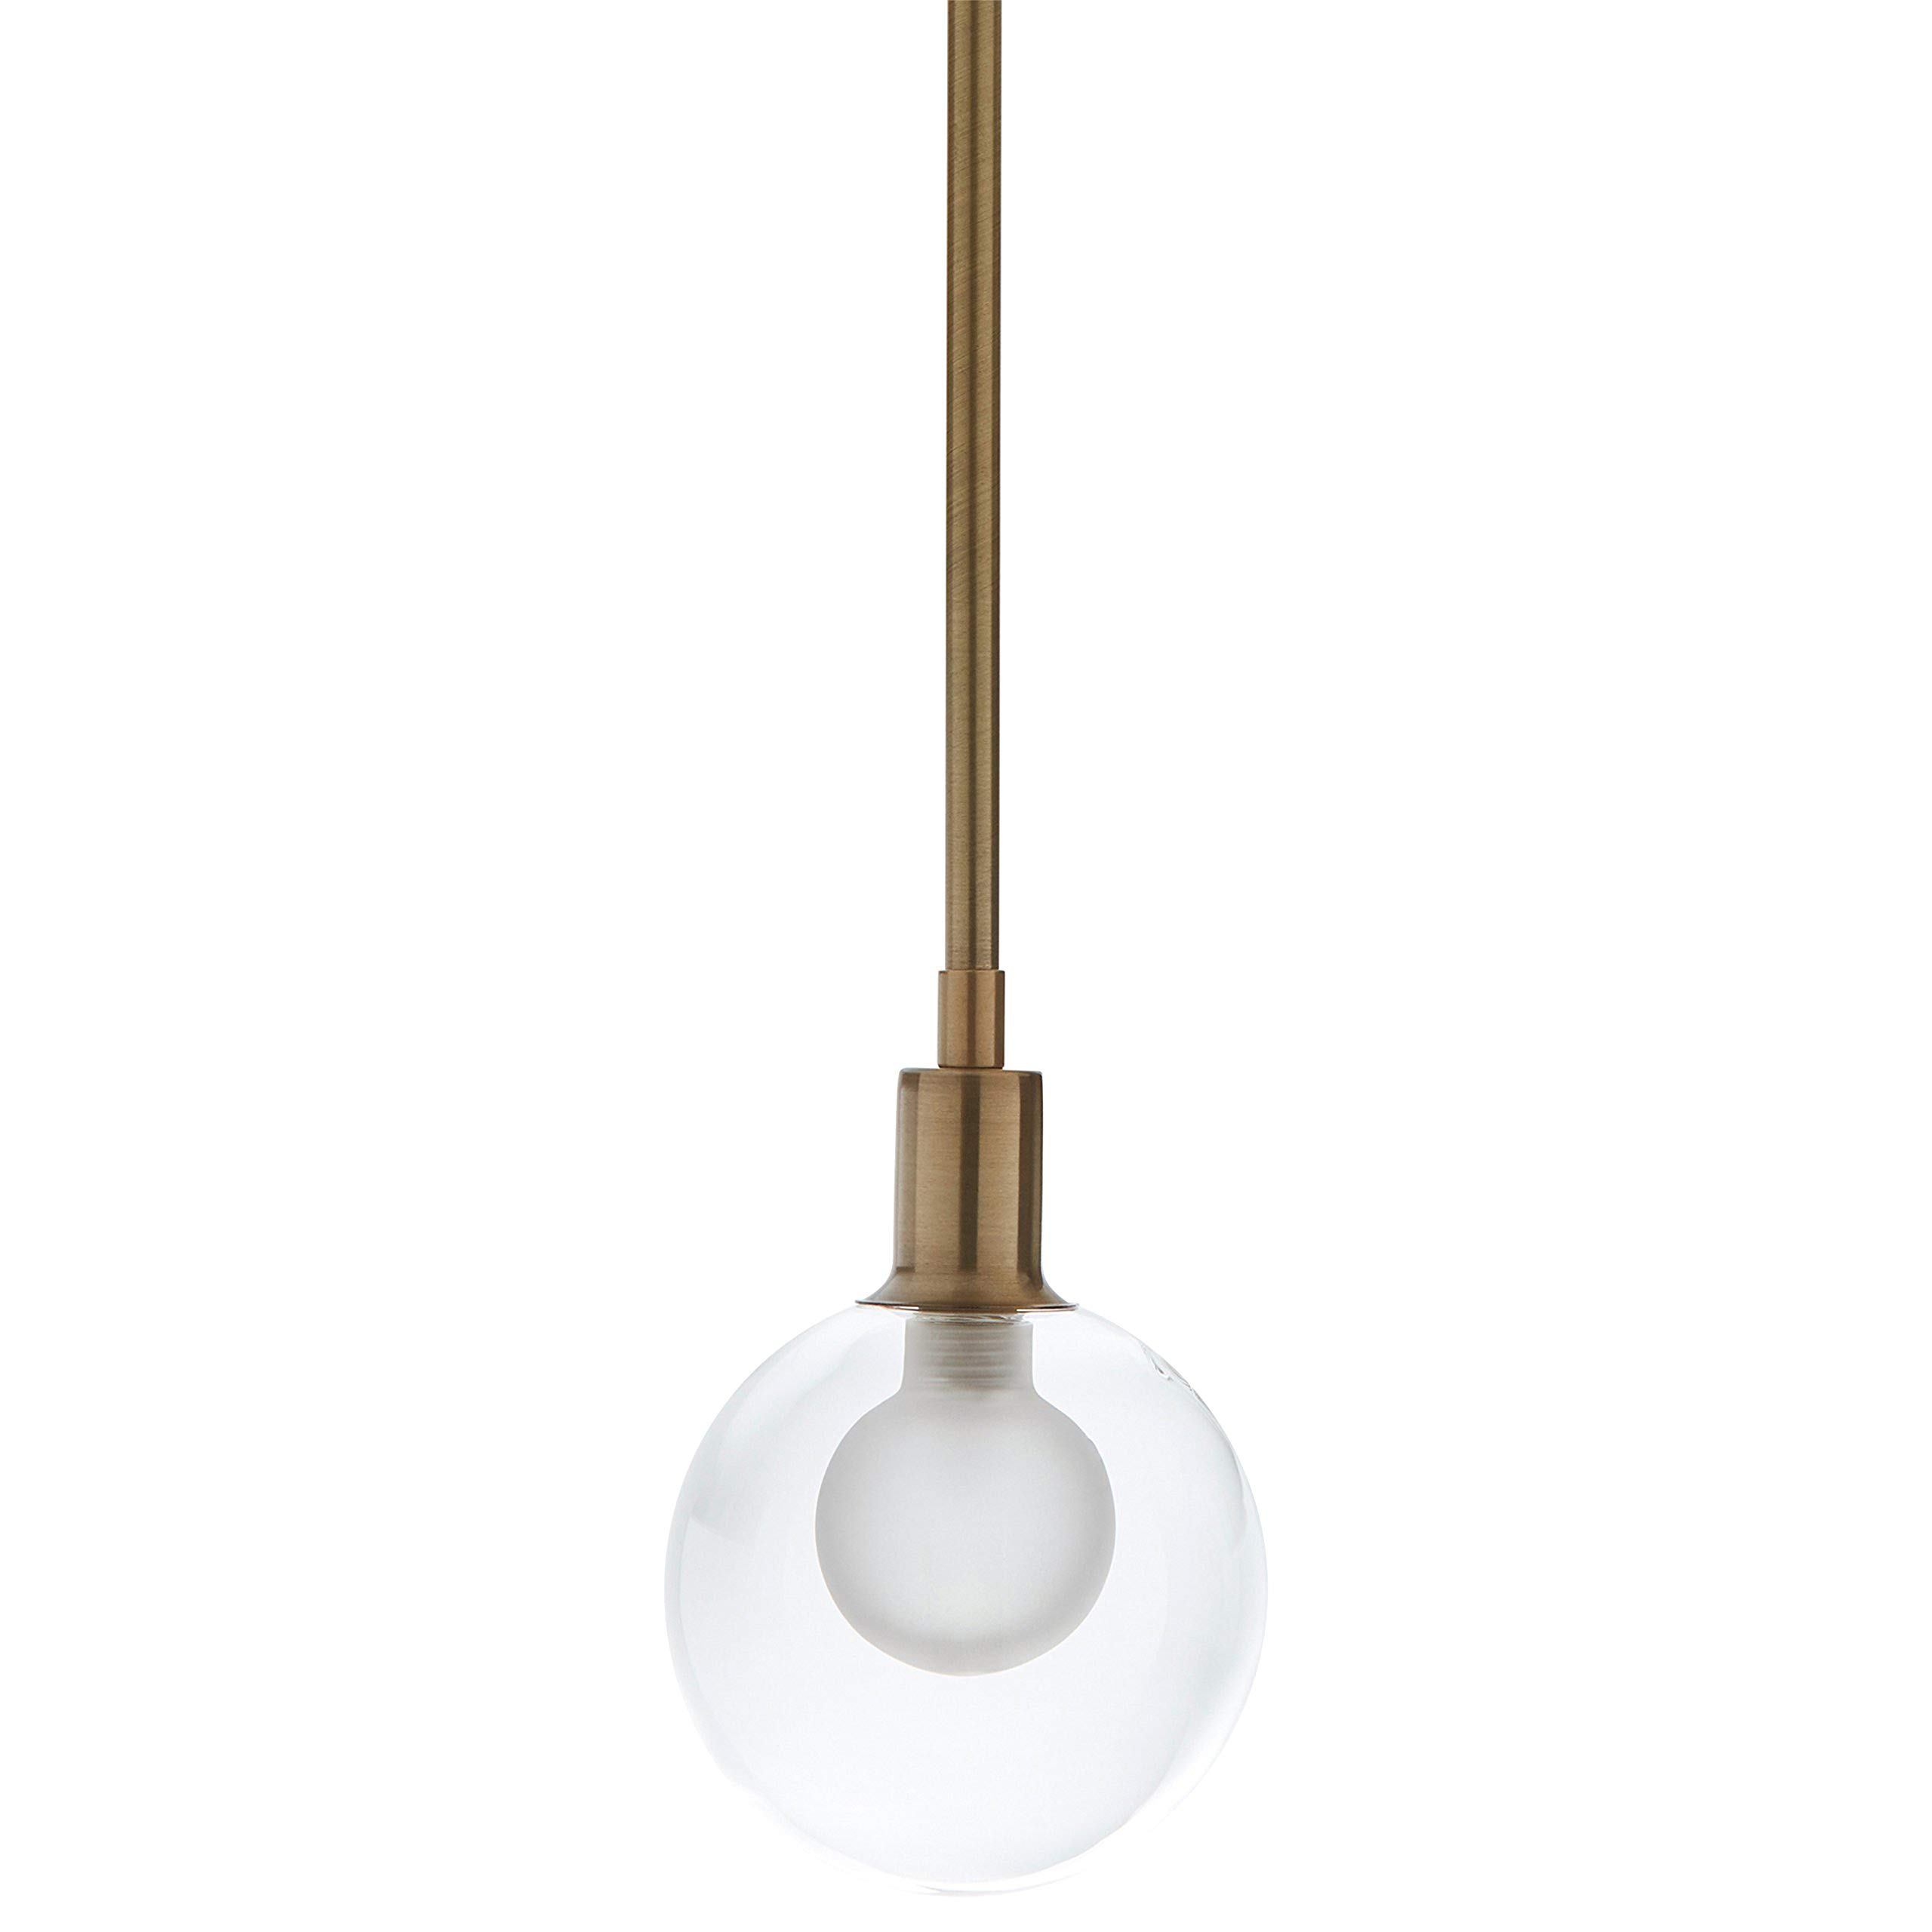 Amazon Brand – Rivet Mid-Century Modern Ceiling Hanging Glass Globe Pendant Fixture With Light Bulb - 5 x 5 x 10 Inches, Gold